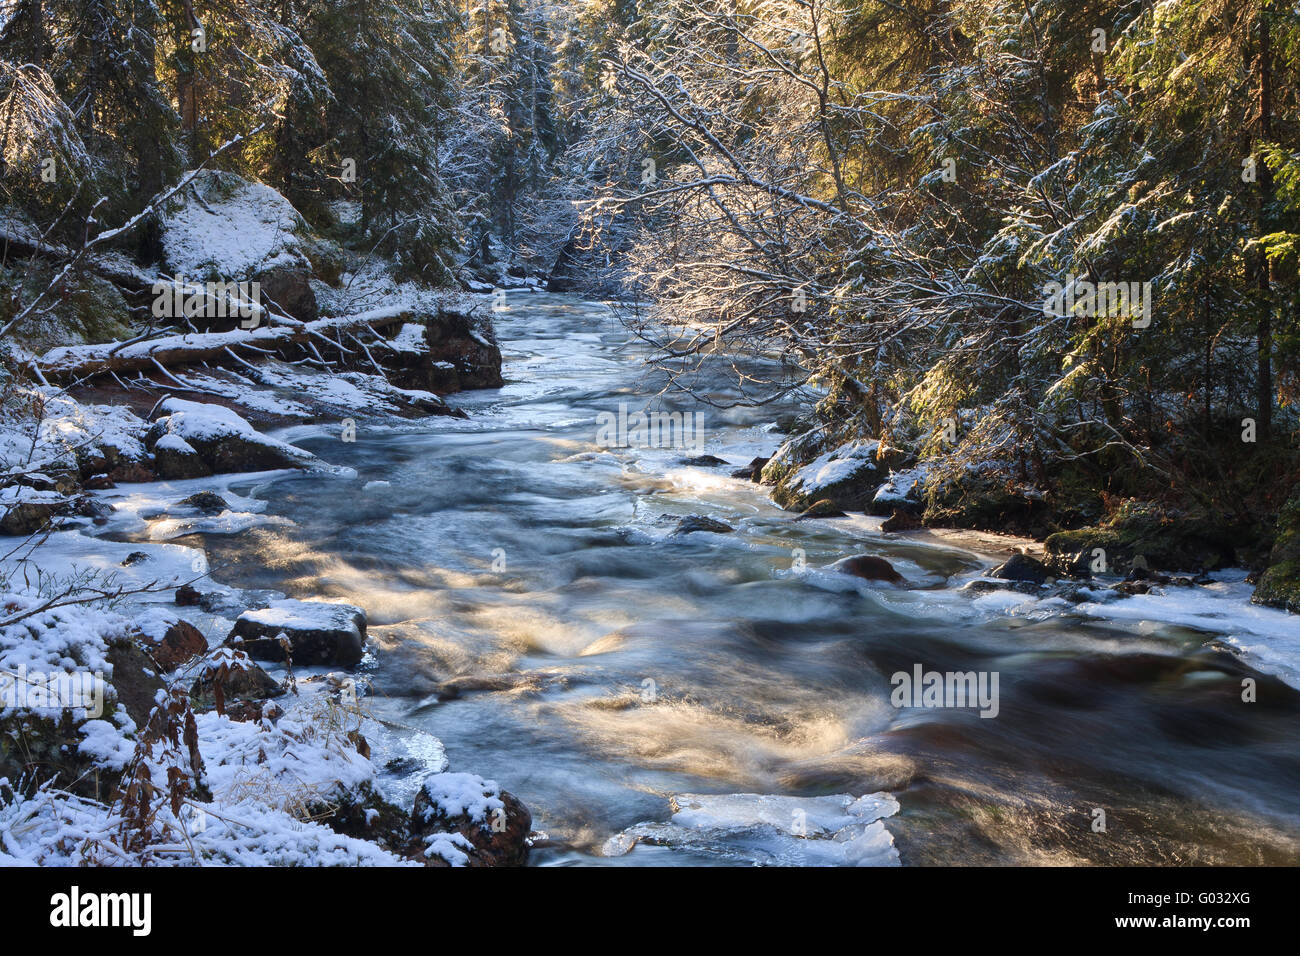 winterly stream in the forest - Stock Image